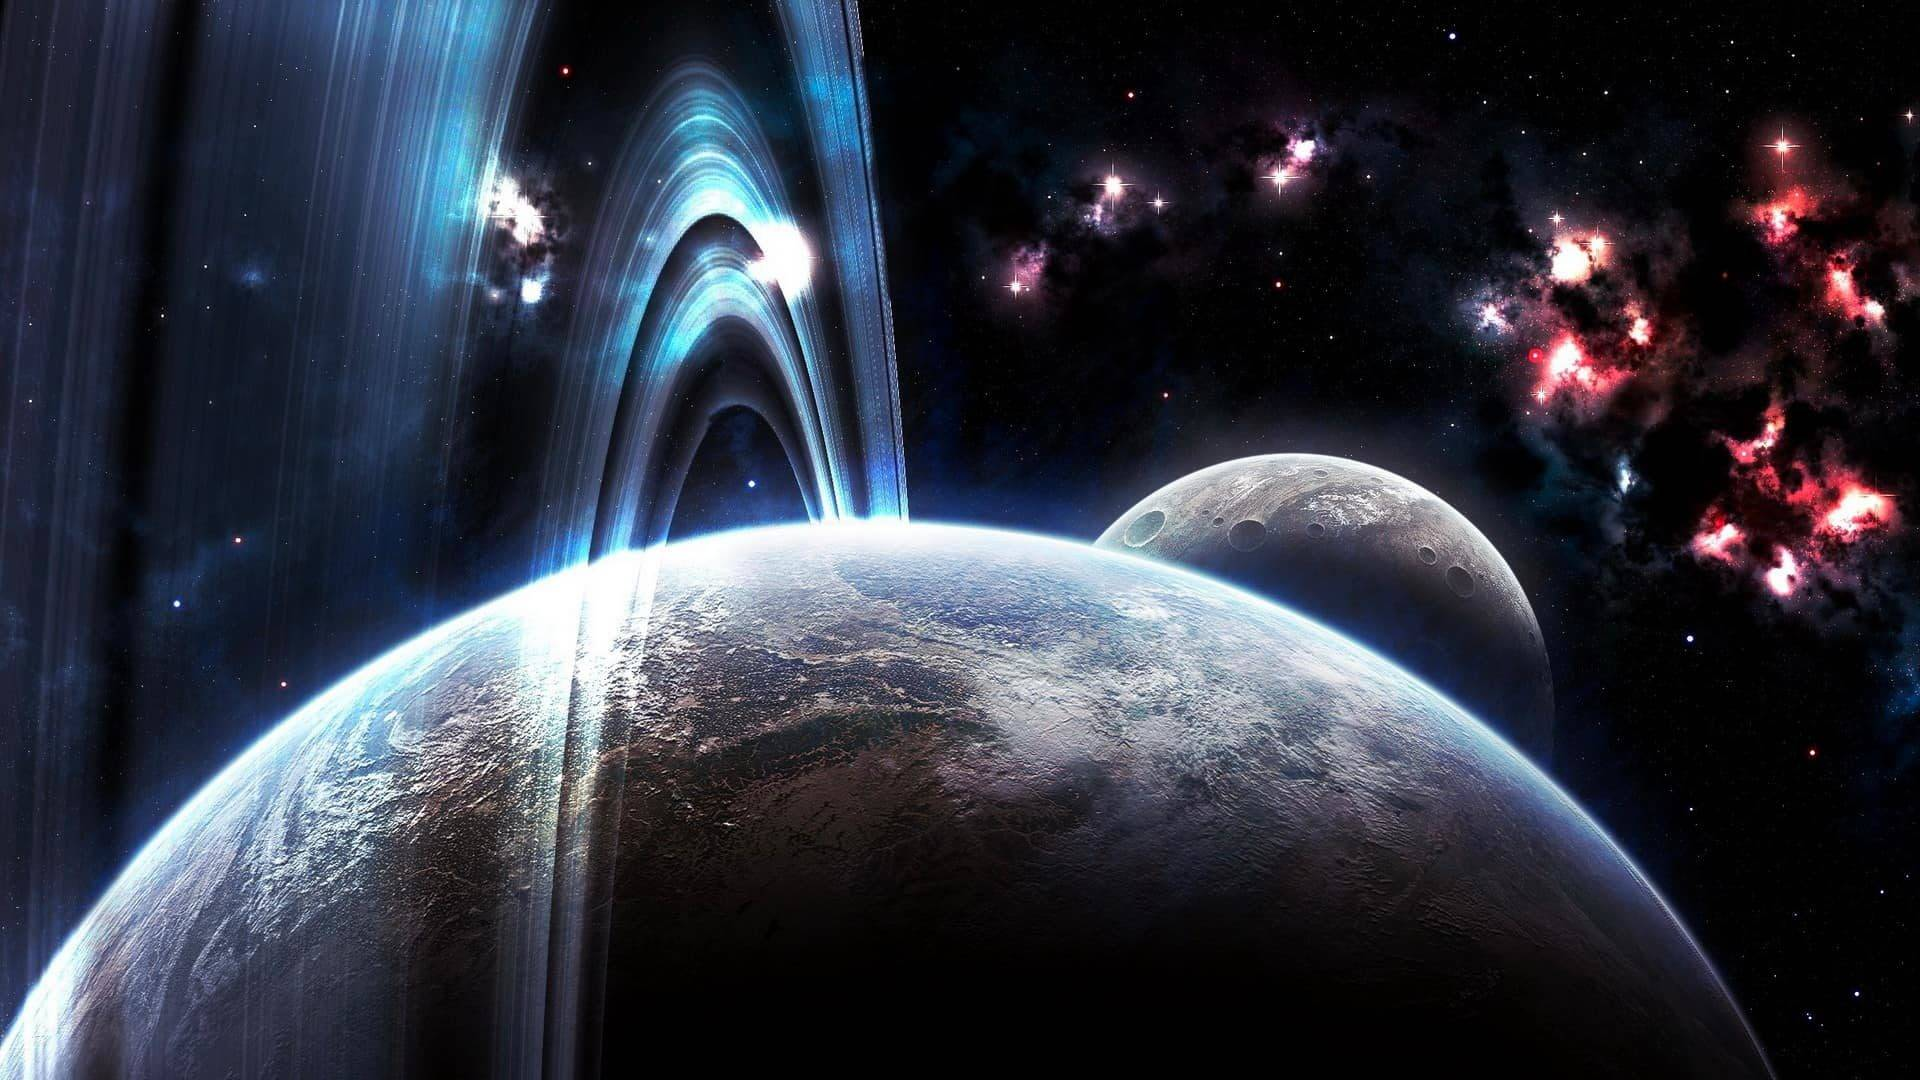 What Would Happen If Uranus Collided With Earth?